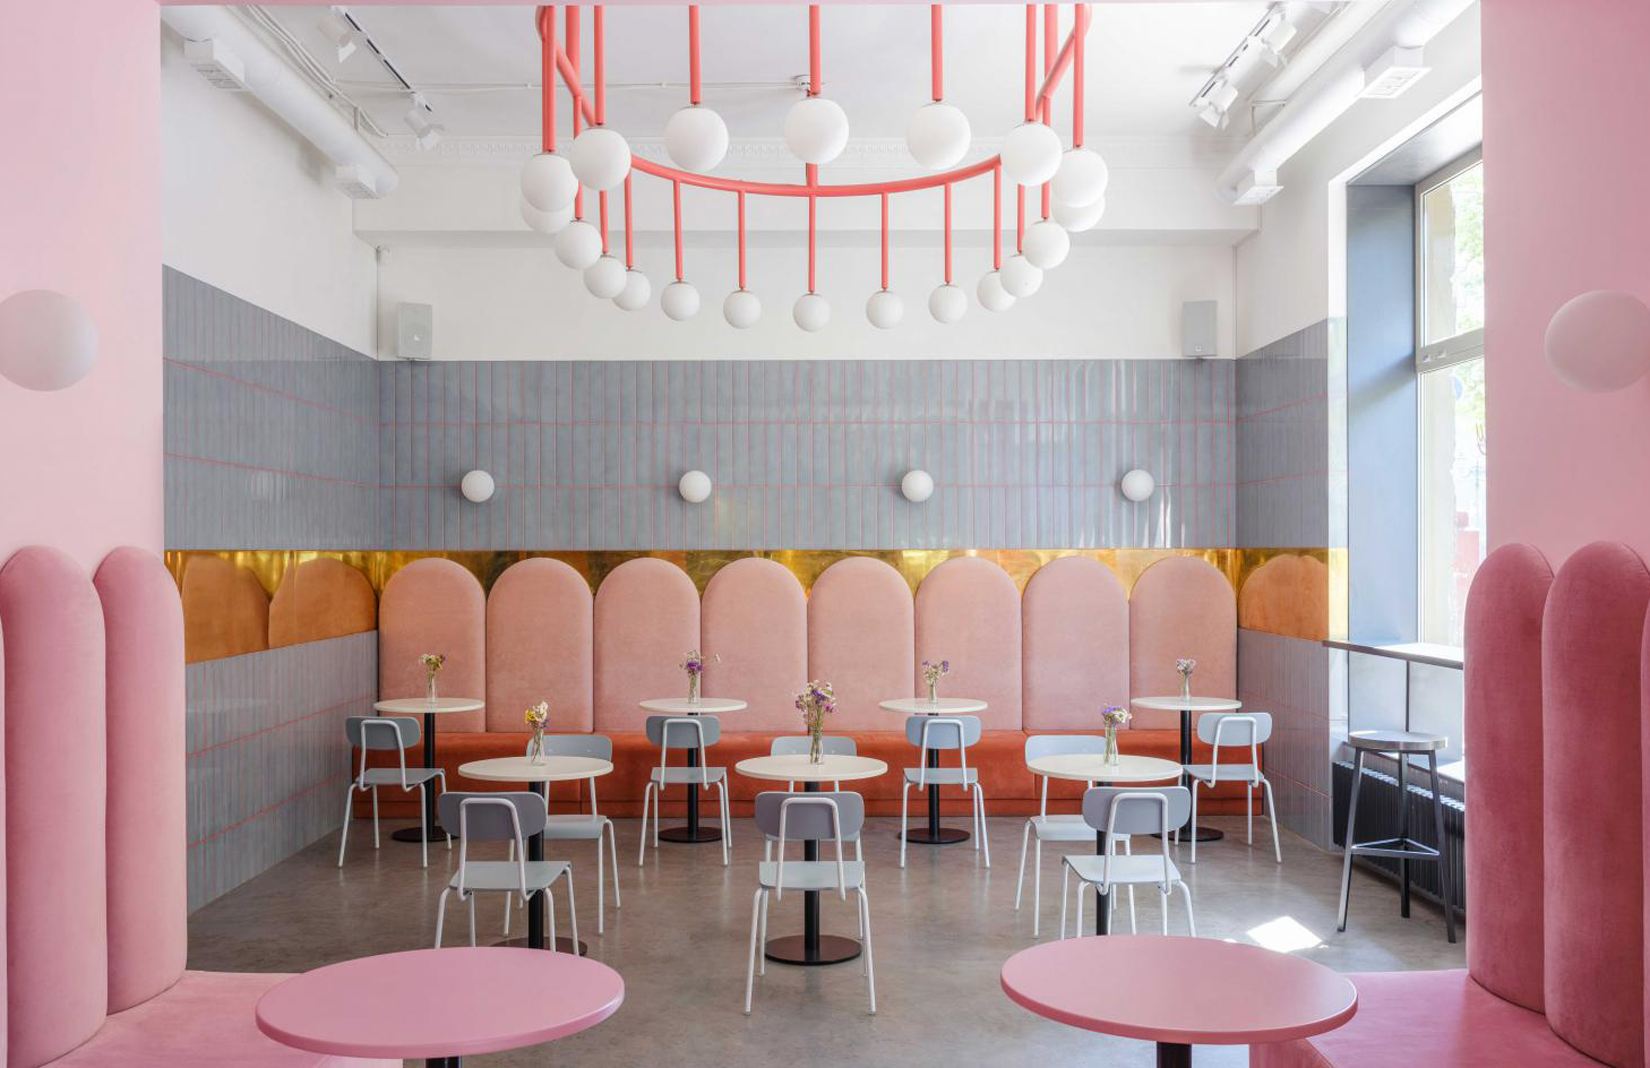 Wes Anderson Coffee Table Book.6 Wes Anderson Inspired Cafes You Can Visit Right Now